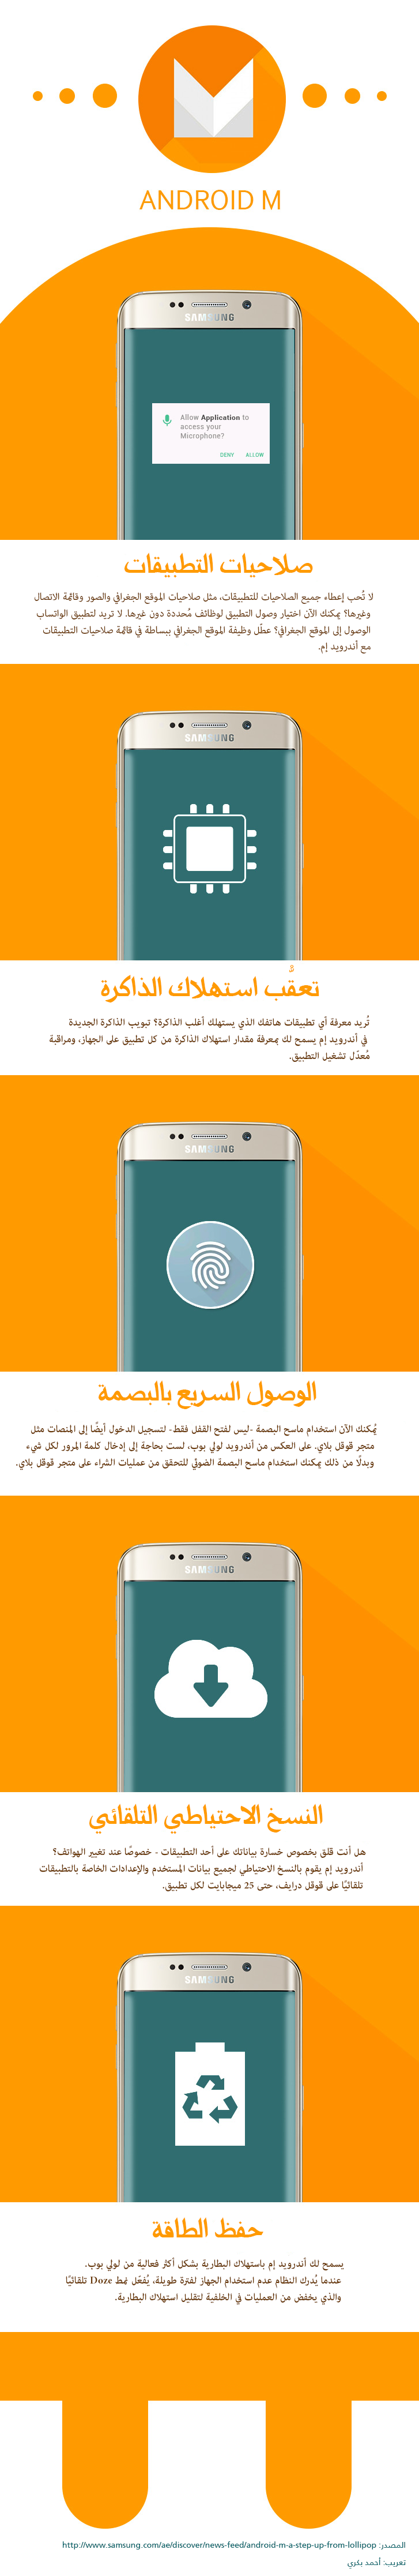 androidm-infographic-Arabic